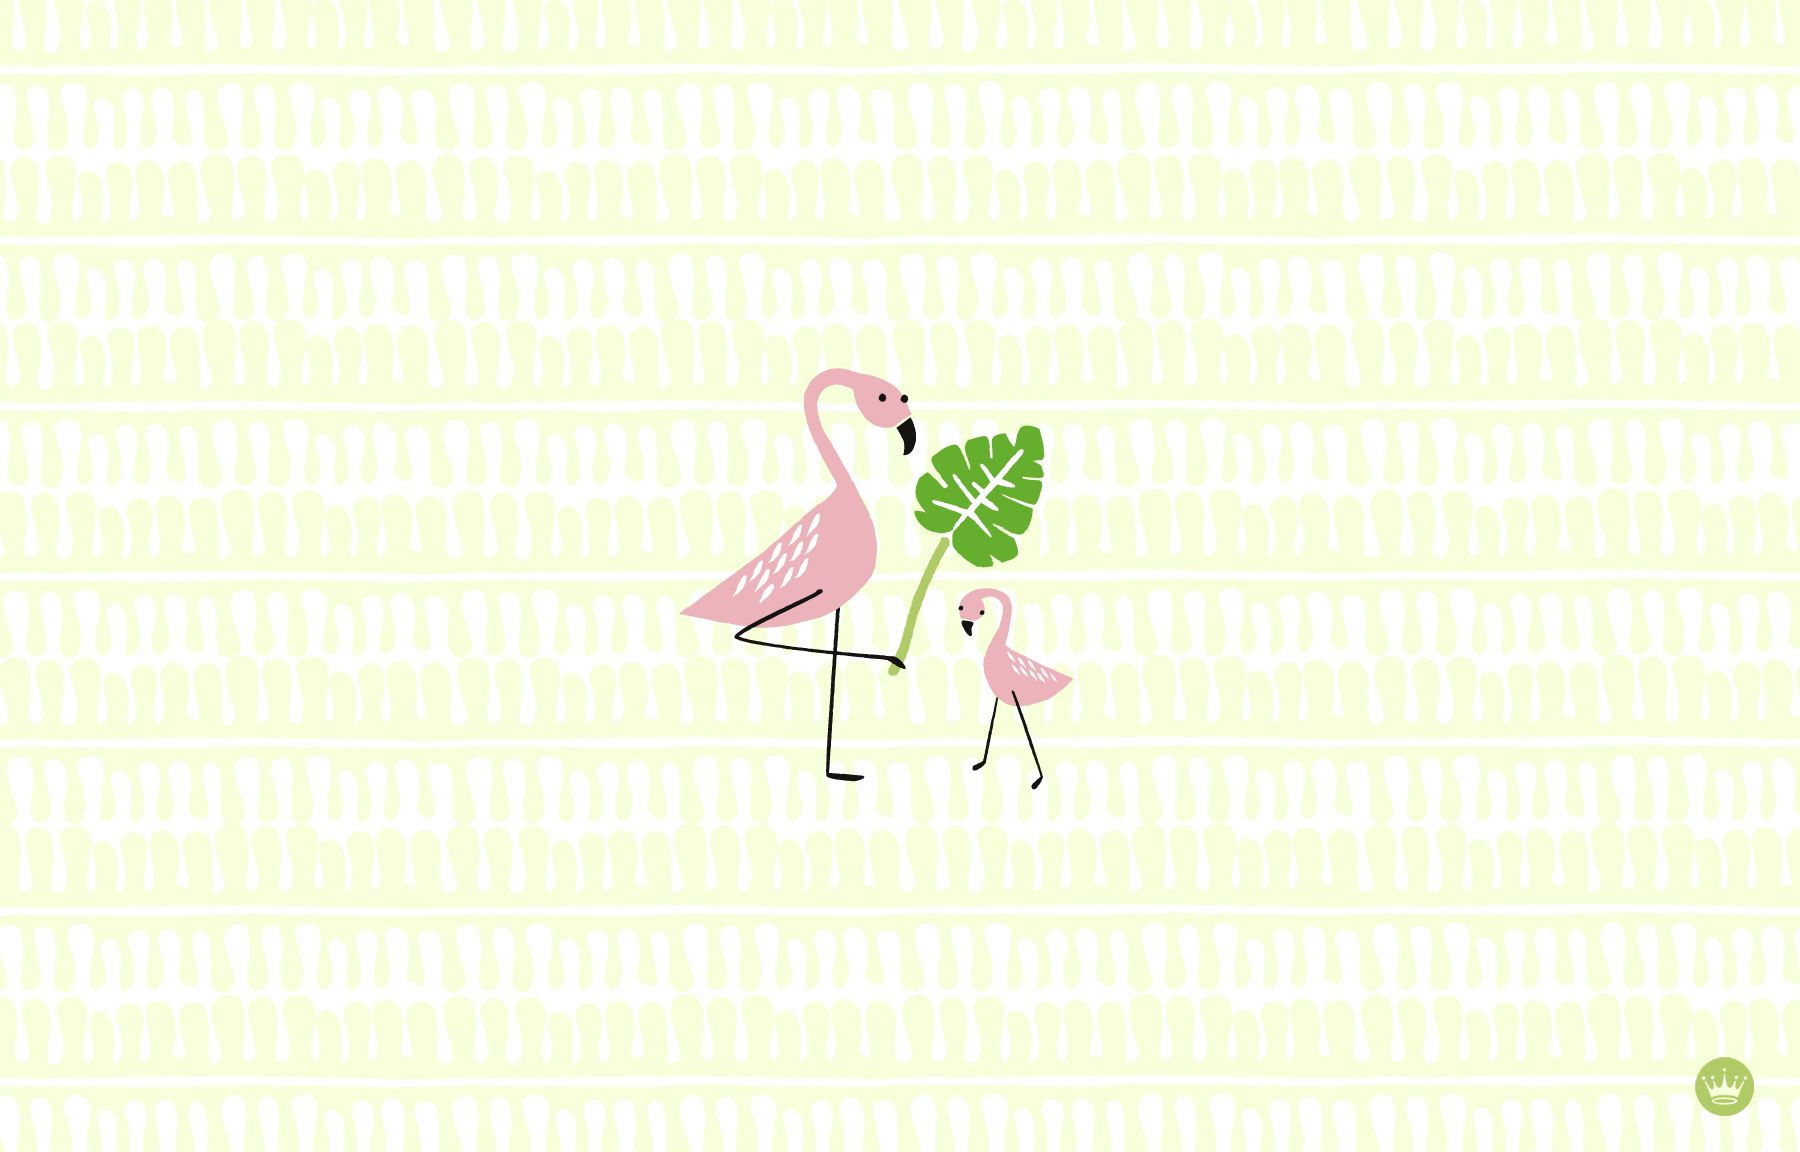 free-downloadable-desktop-wallpaper-_-flamingo-_-thinkmakeshareblog